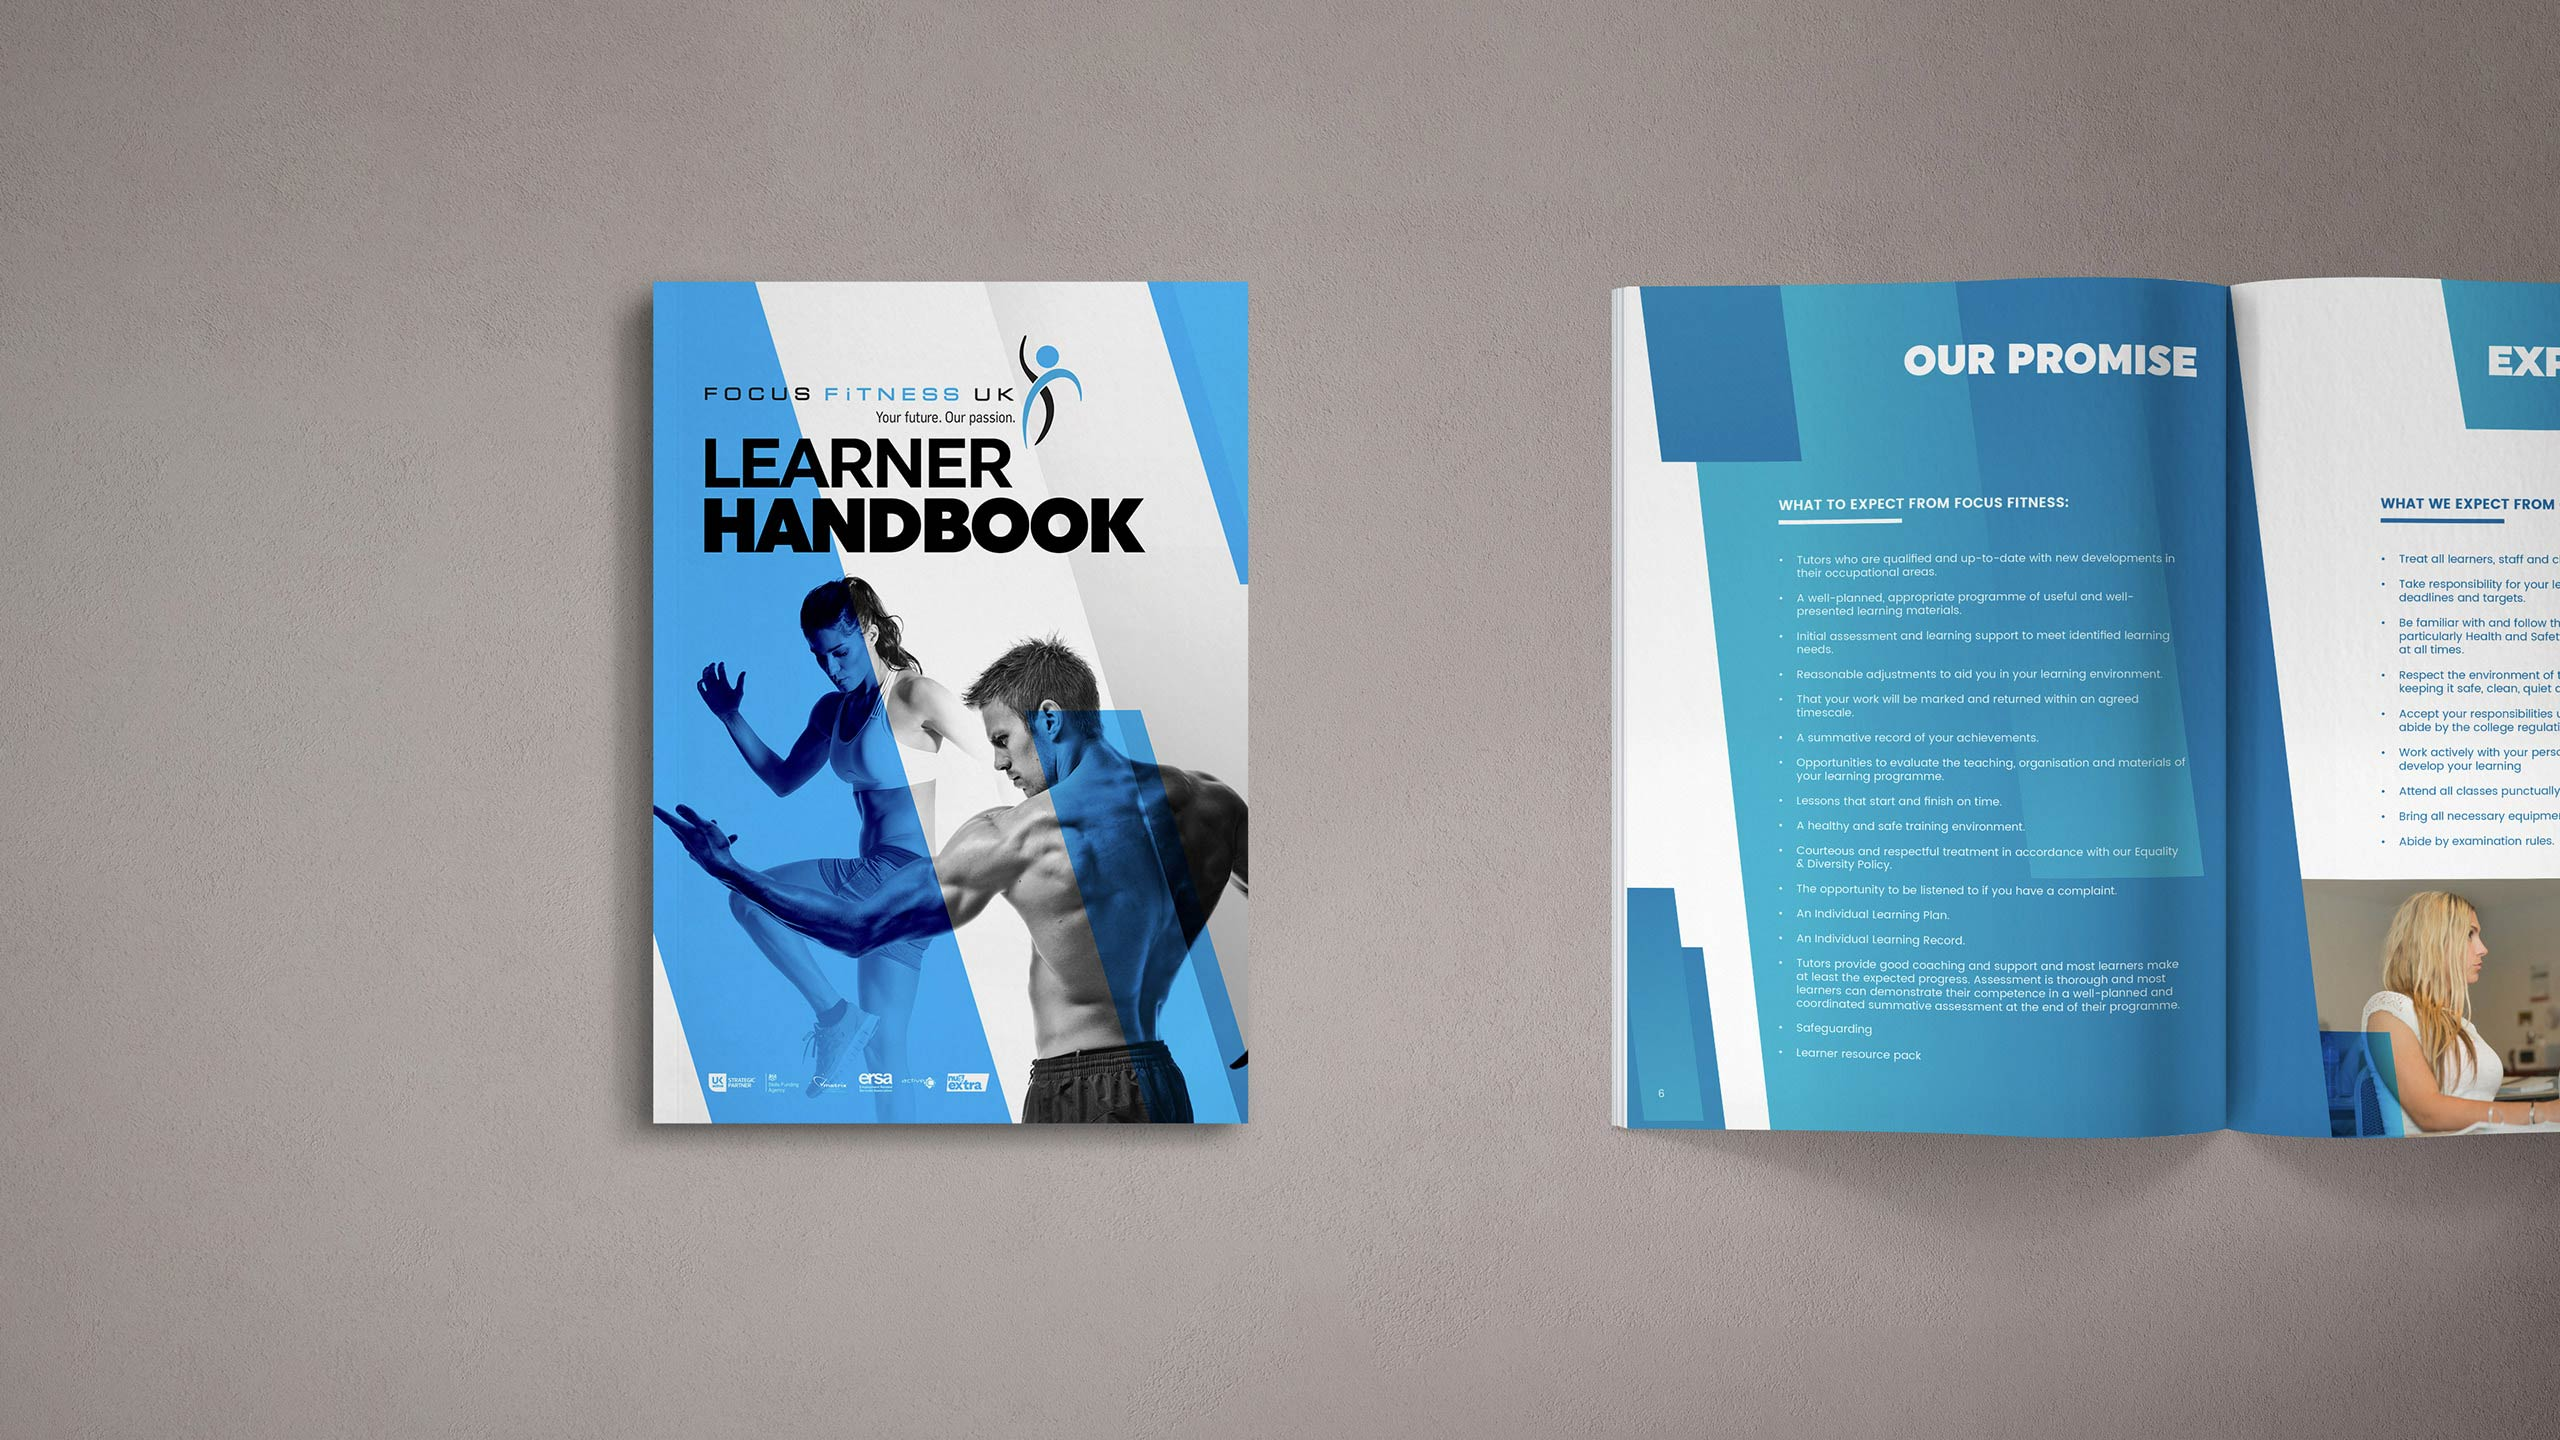 Focus Fitness UK - Booklet - Leaner Handbook